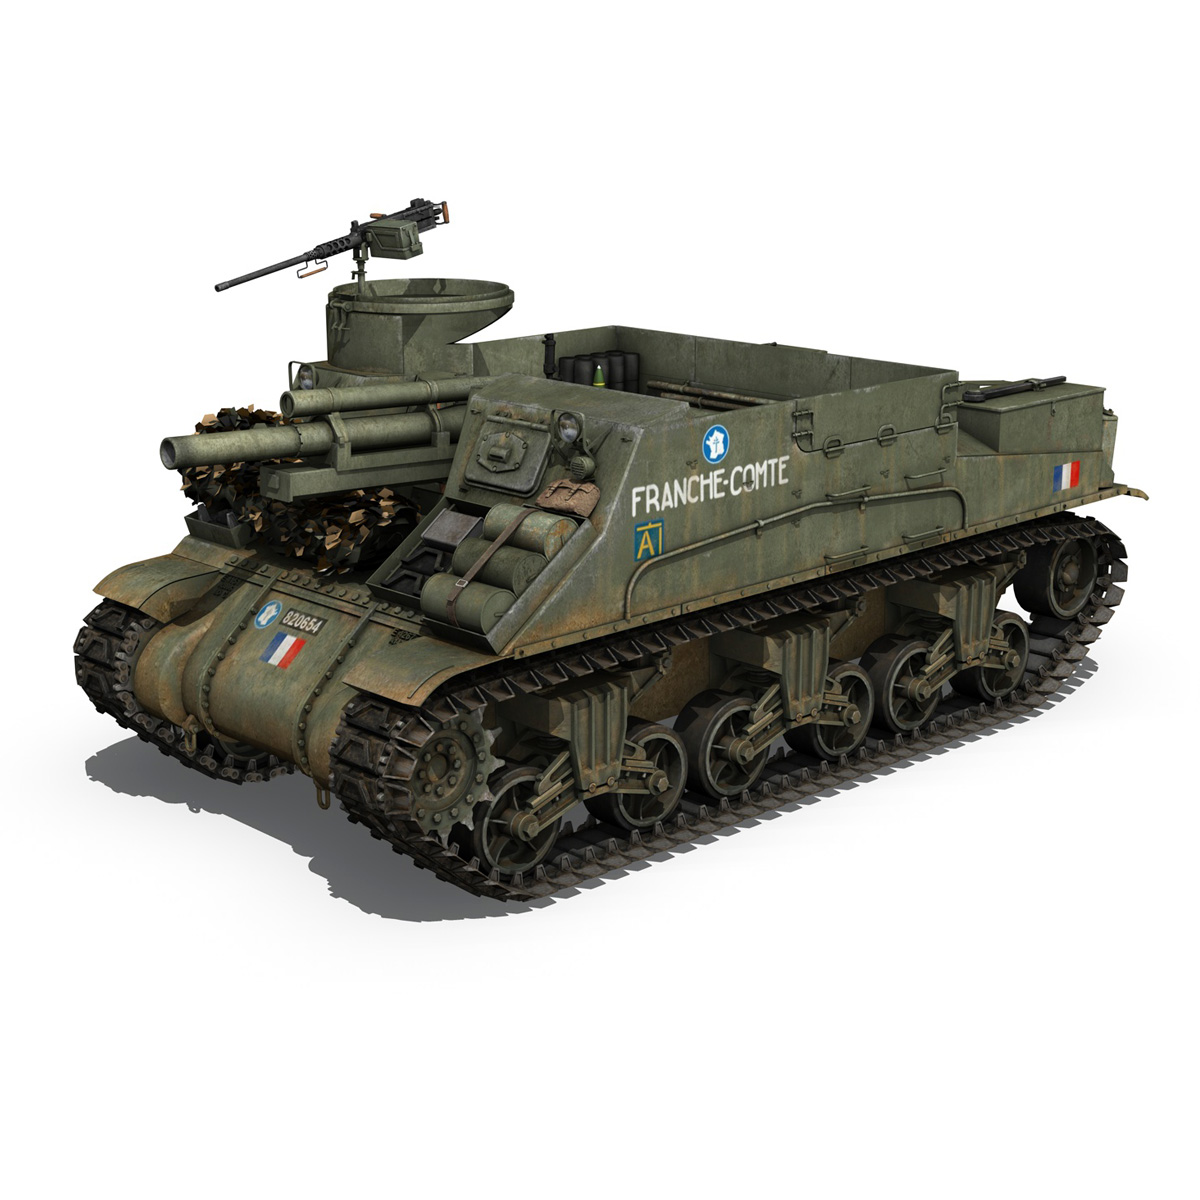 M7 Priest - Franche-Comte 3d model  265857